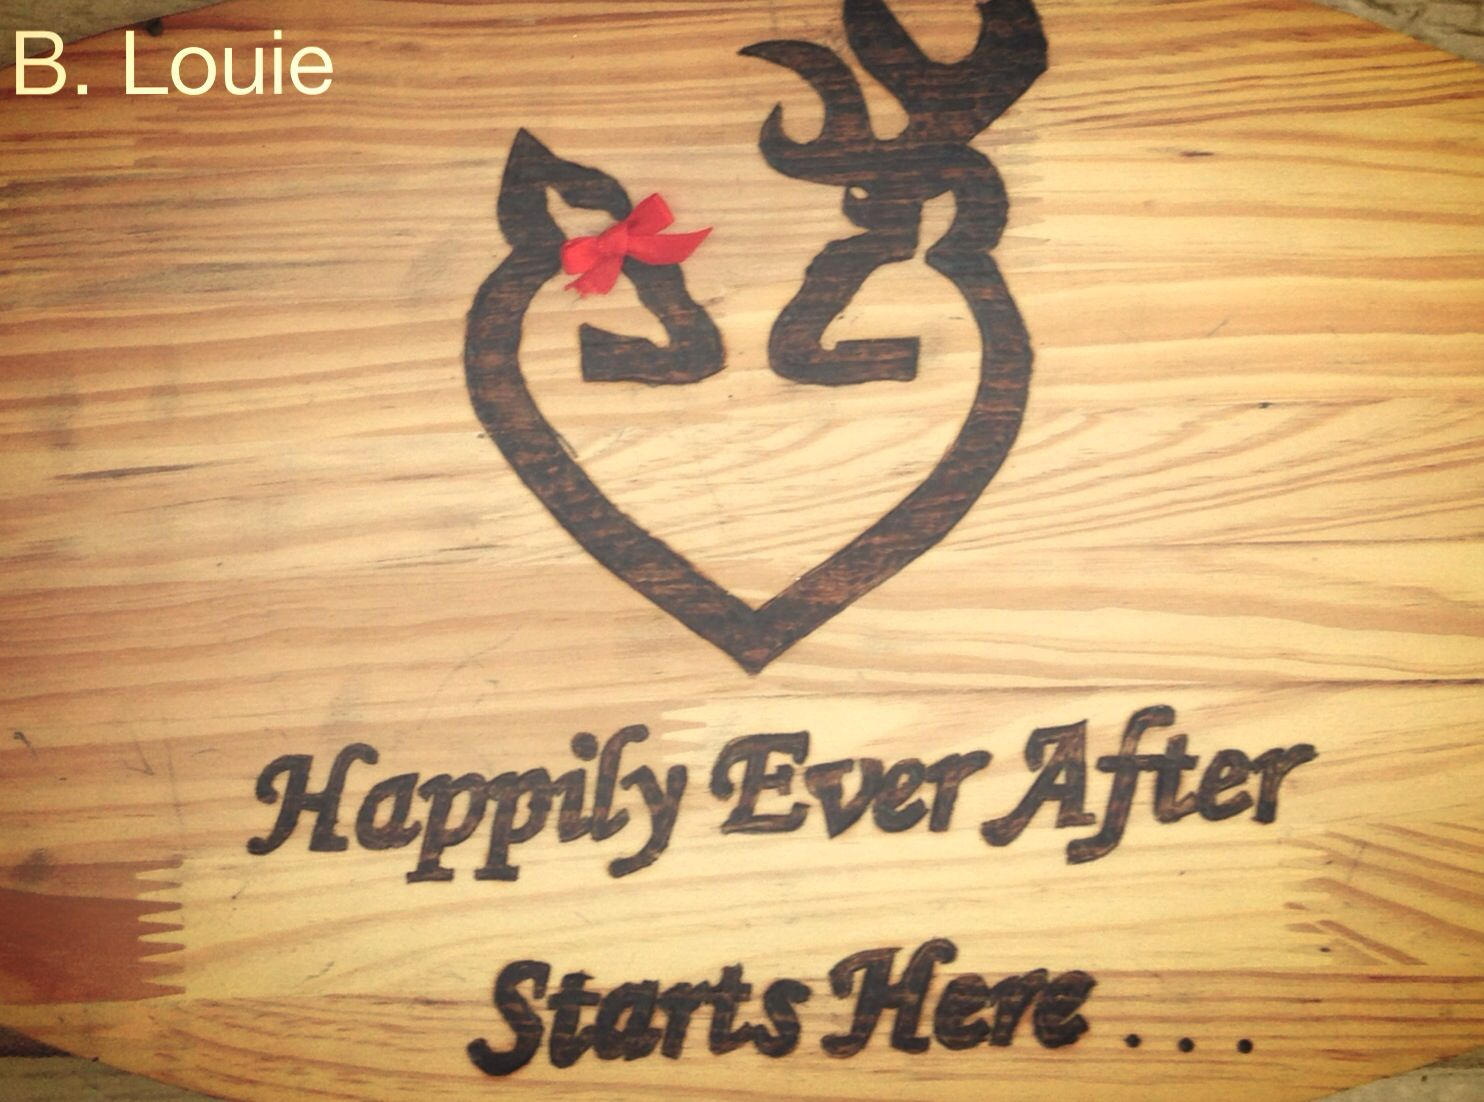 Wood Burned Sign 2013 b. Louie